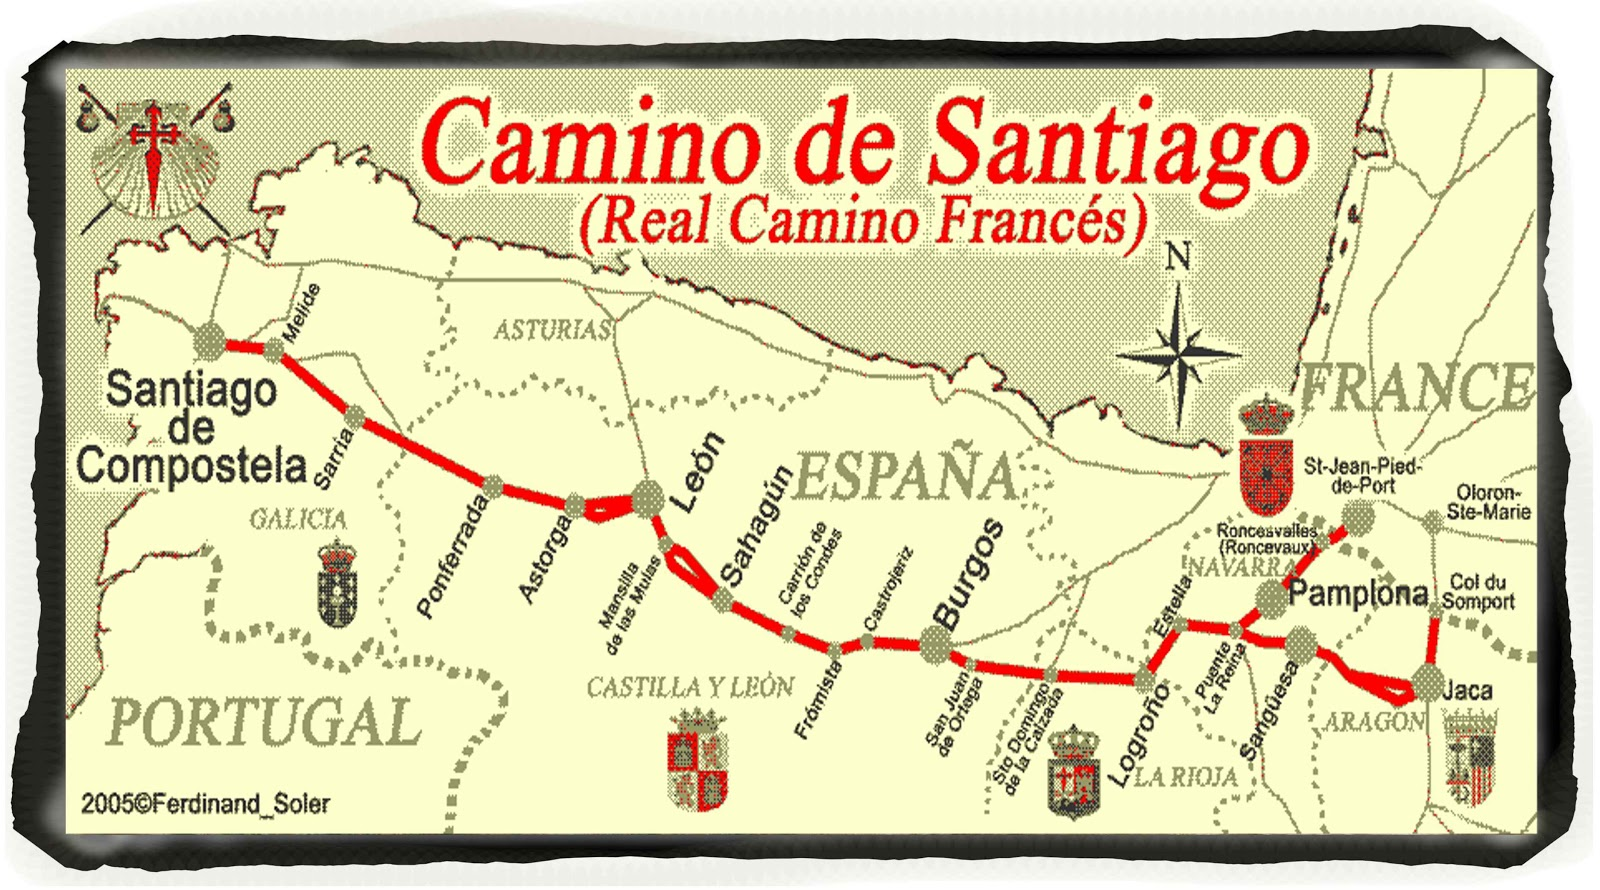 Camino Santiago Packing List Camino De Santiago Packing List Inside Out Travel The World